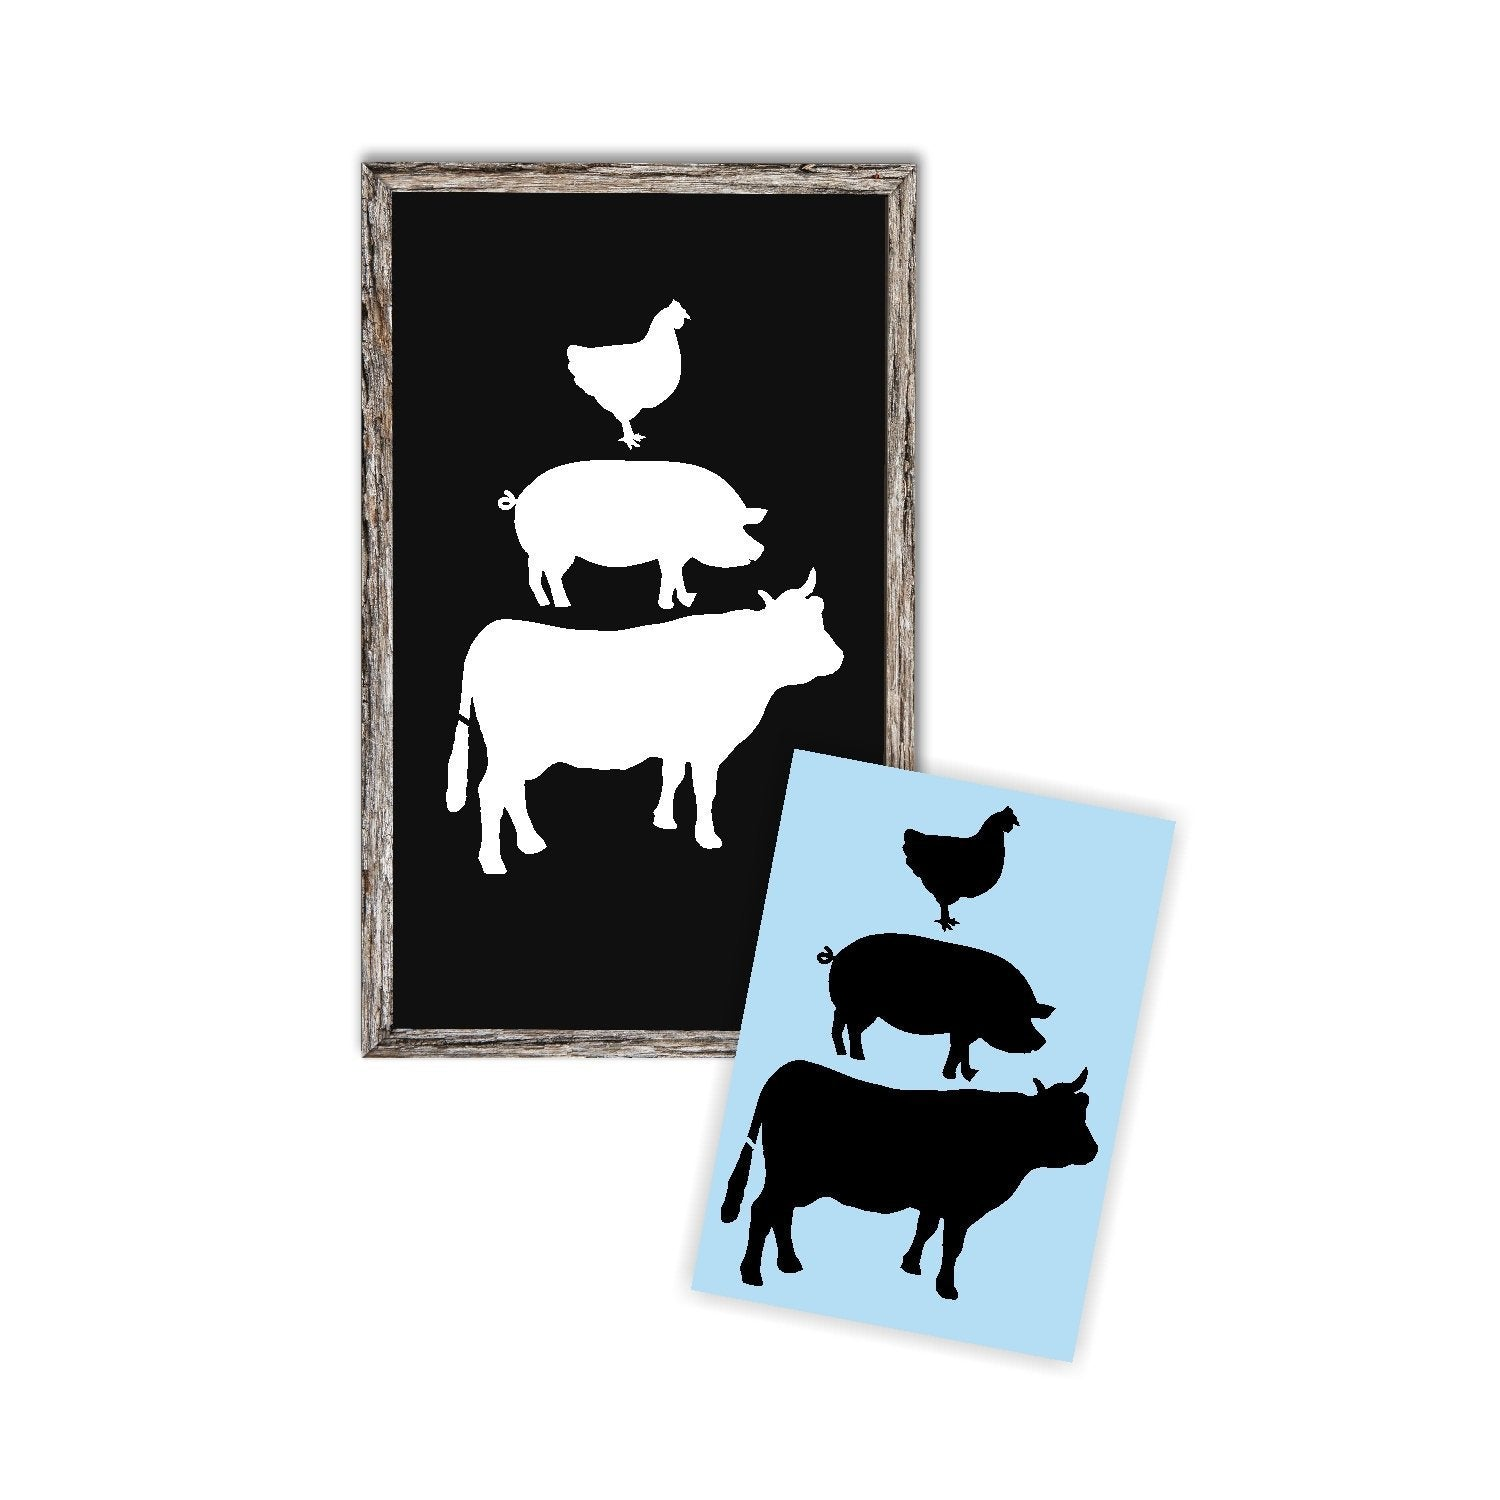 Cow Pig Rooster Stack Stencil For Wood Sign - Reuseable Stencil